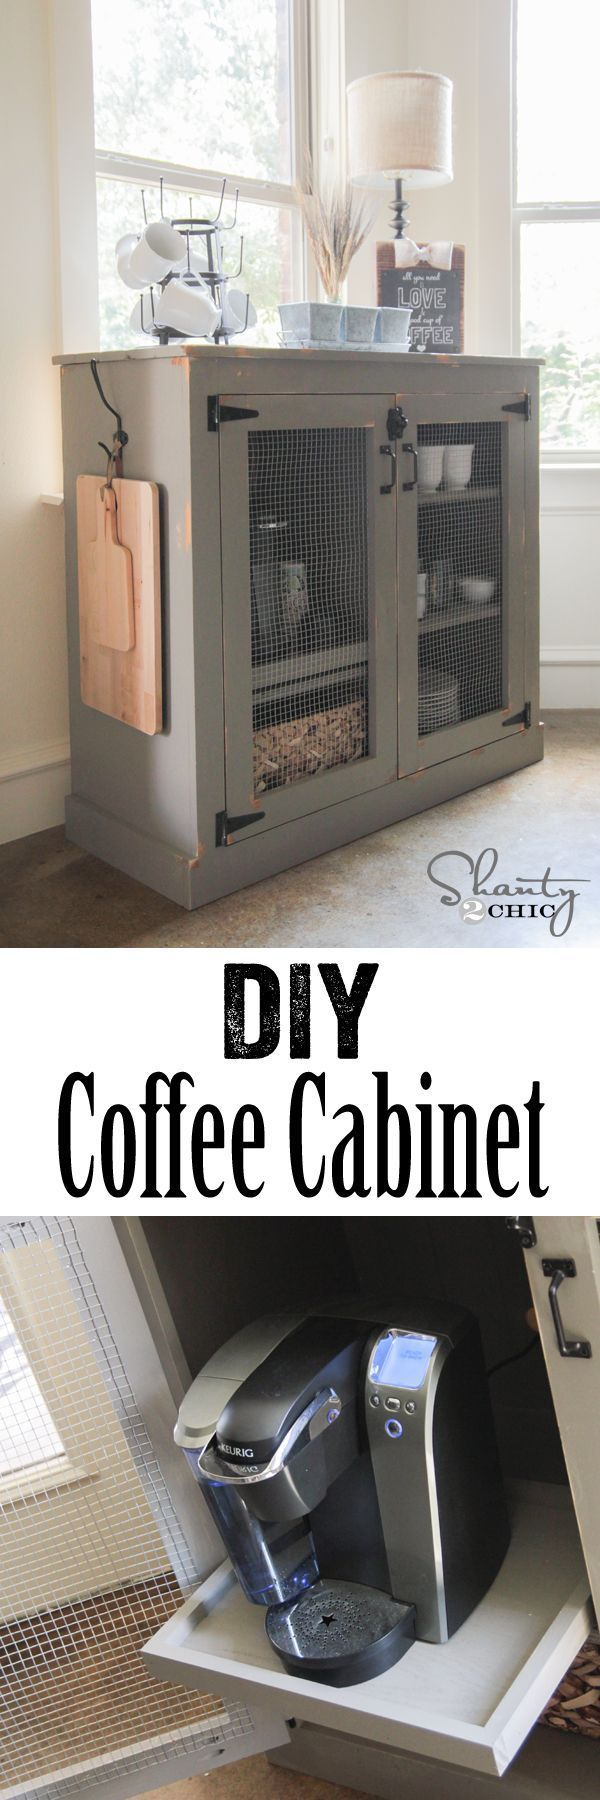 nice DIY Farmhouse Coffee Cabinet - Shanty 2 Chic